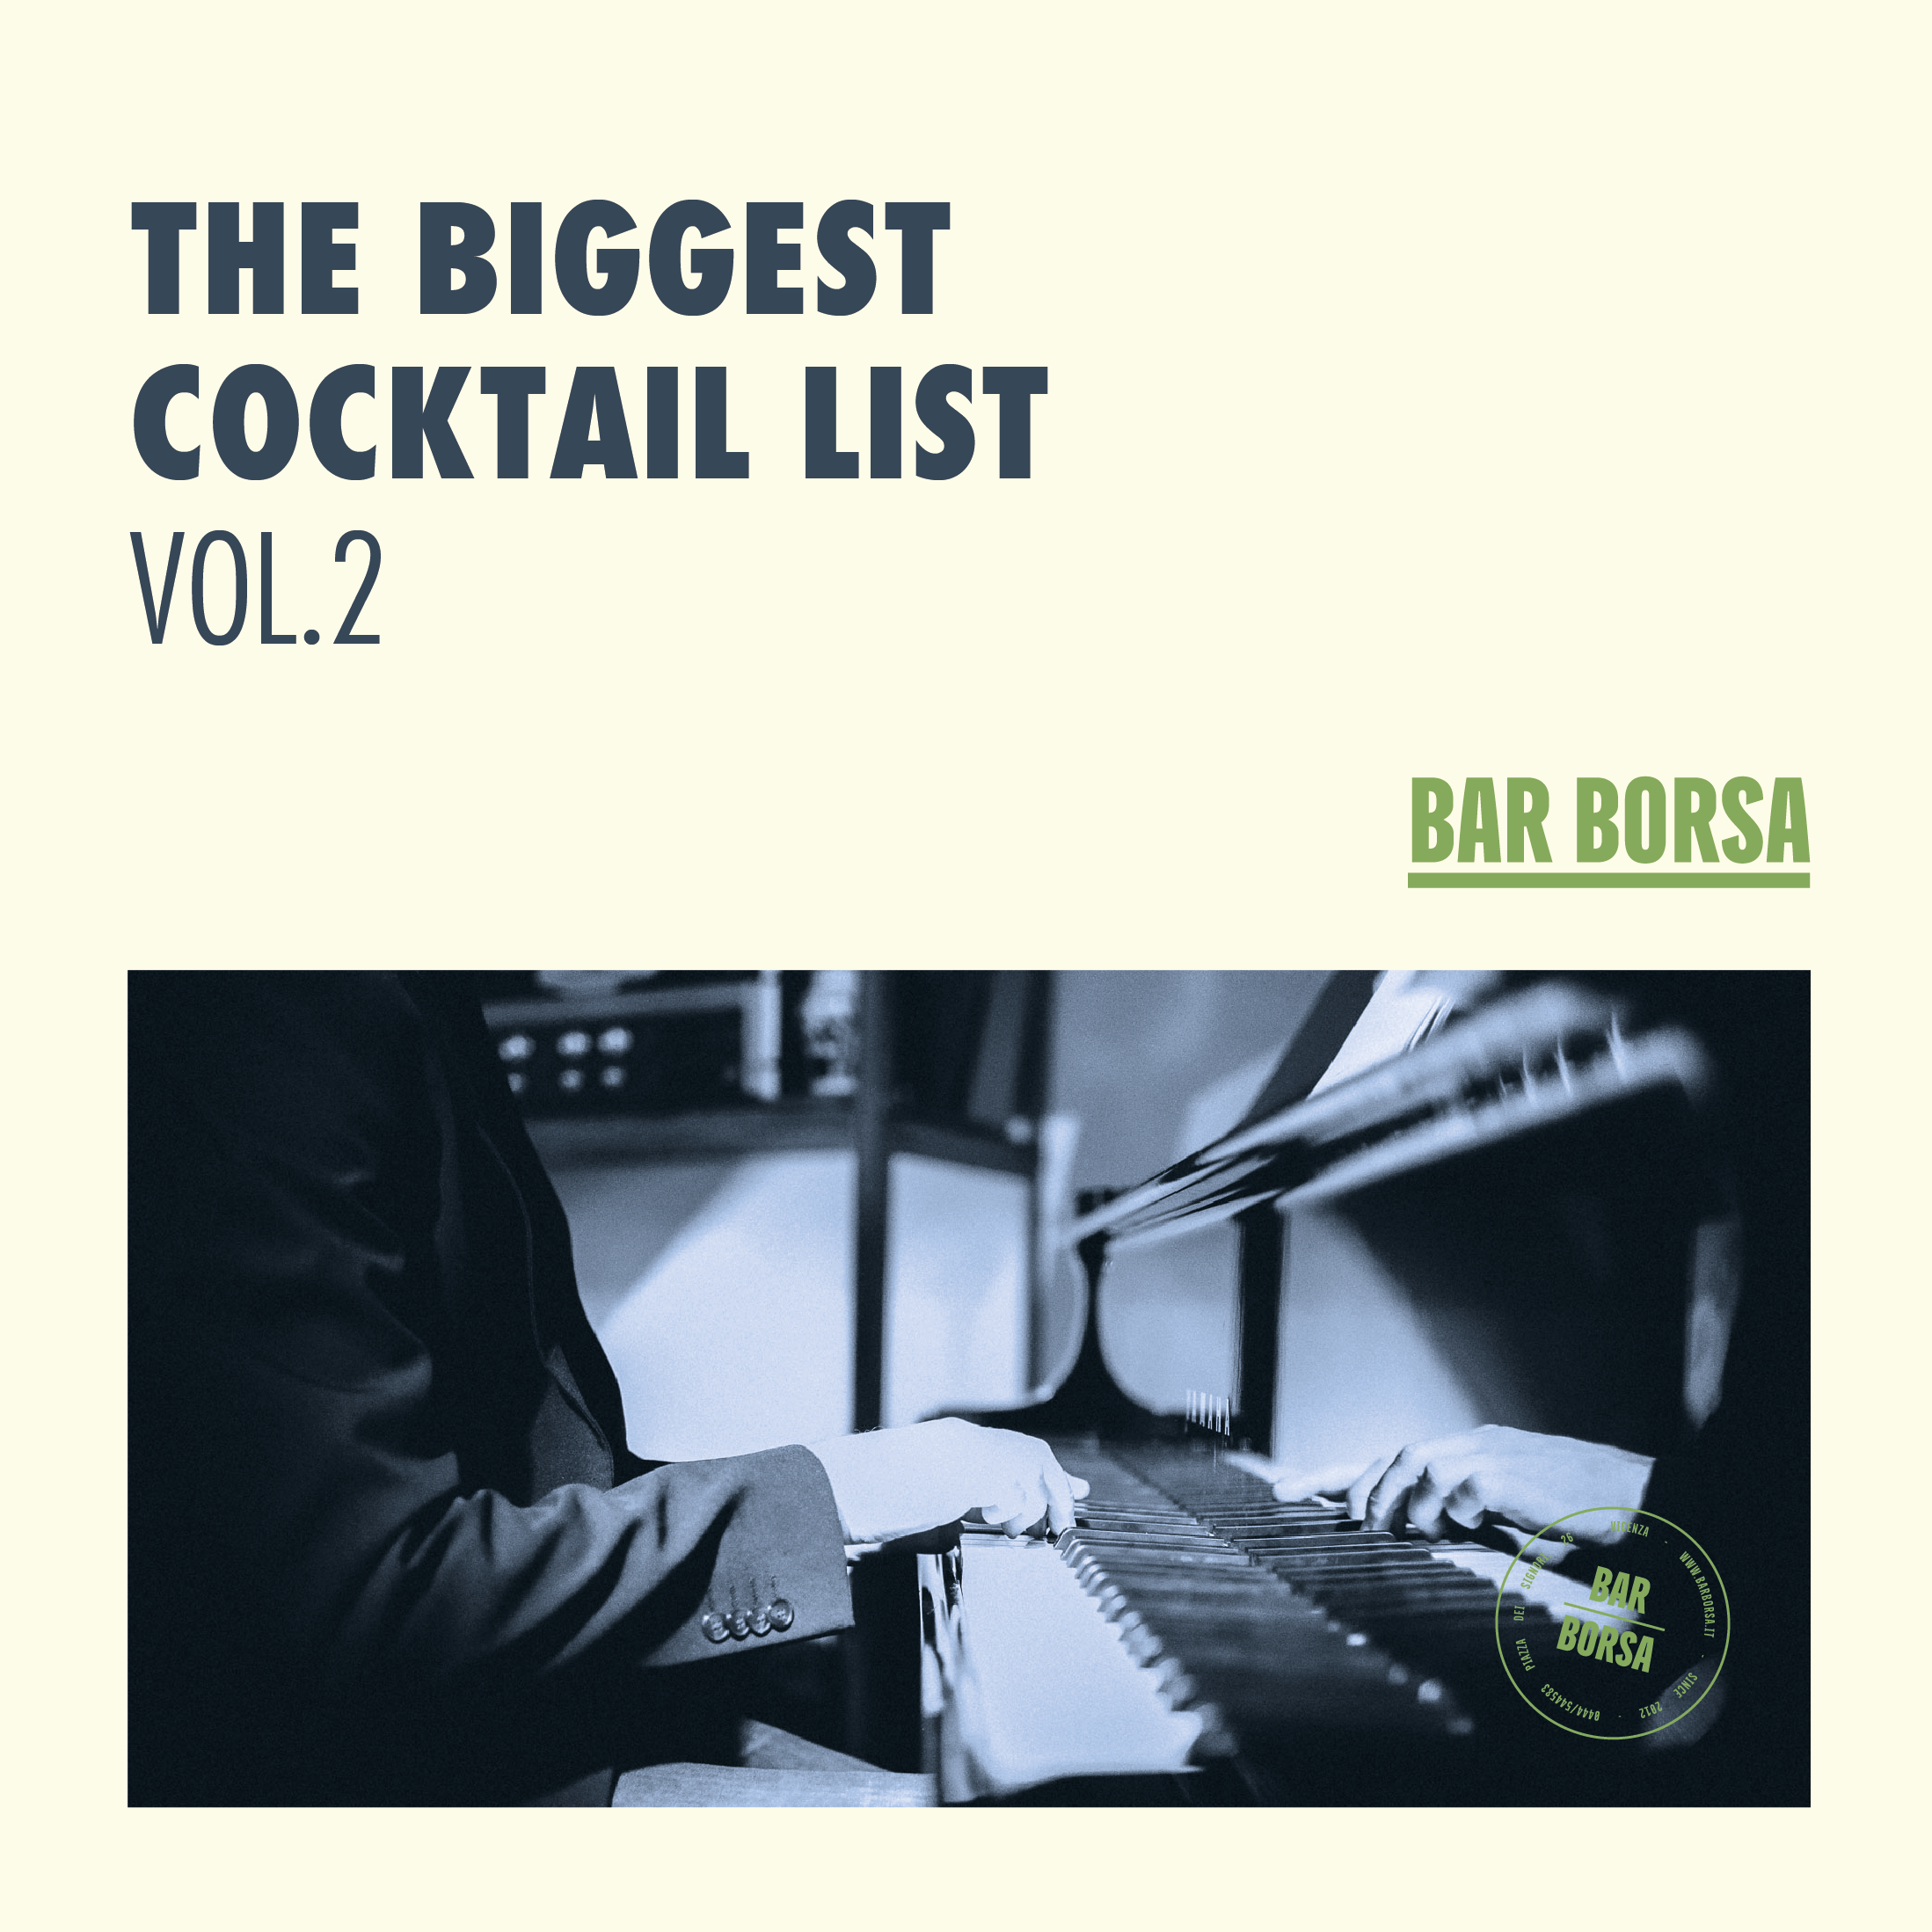 THE BIGGEST COCKTAIL LIST vol.2